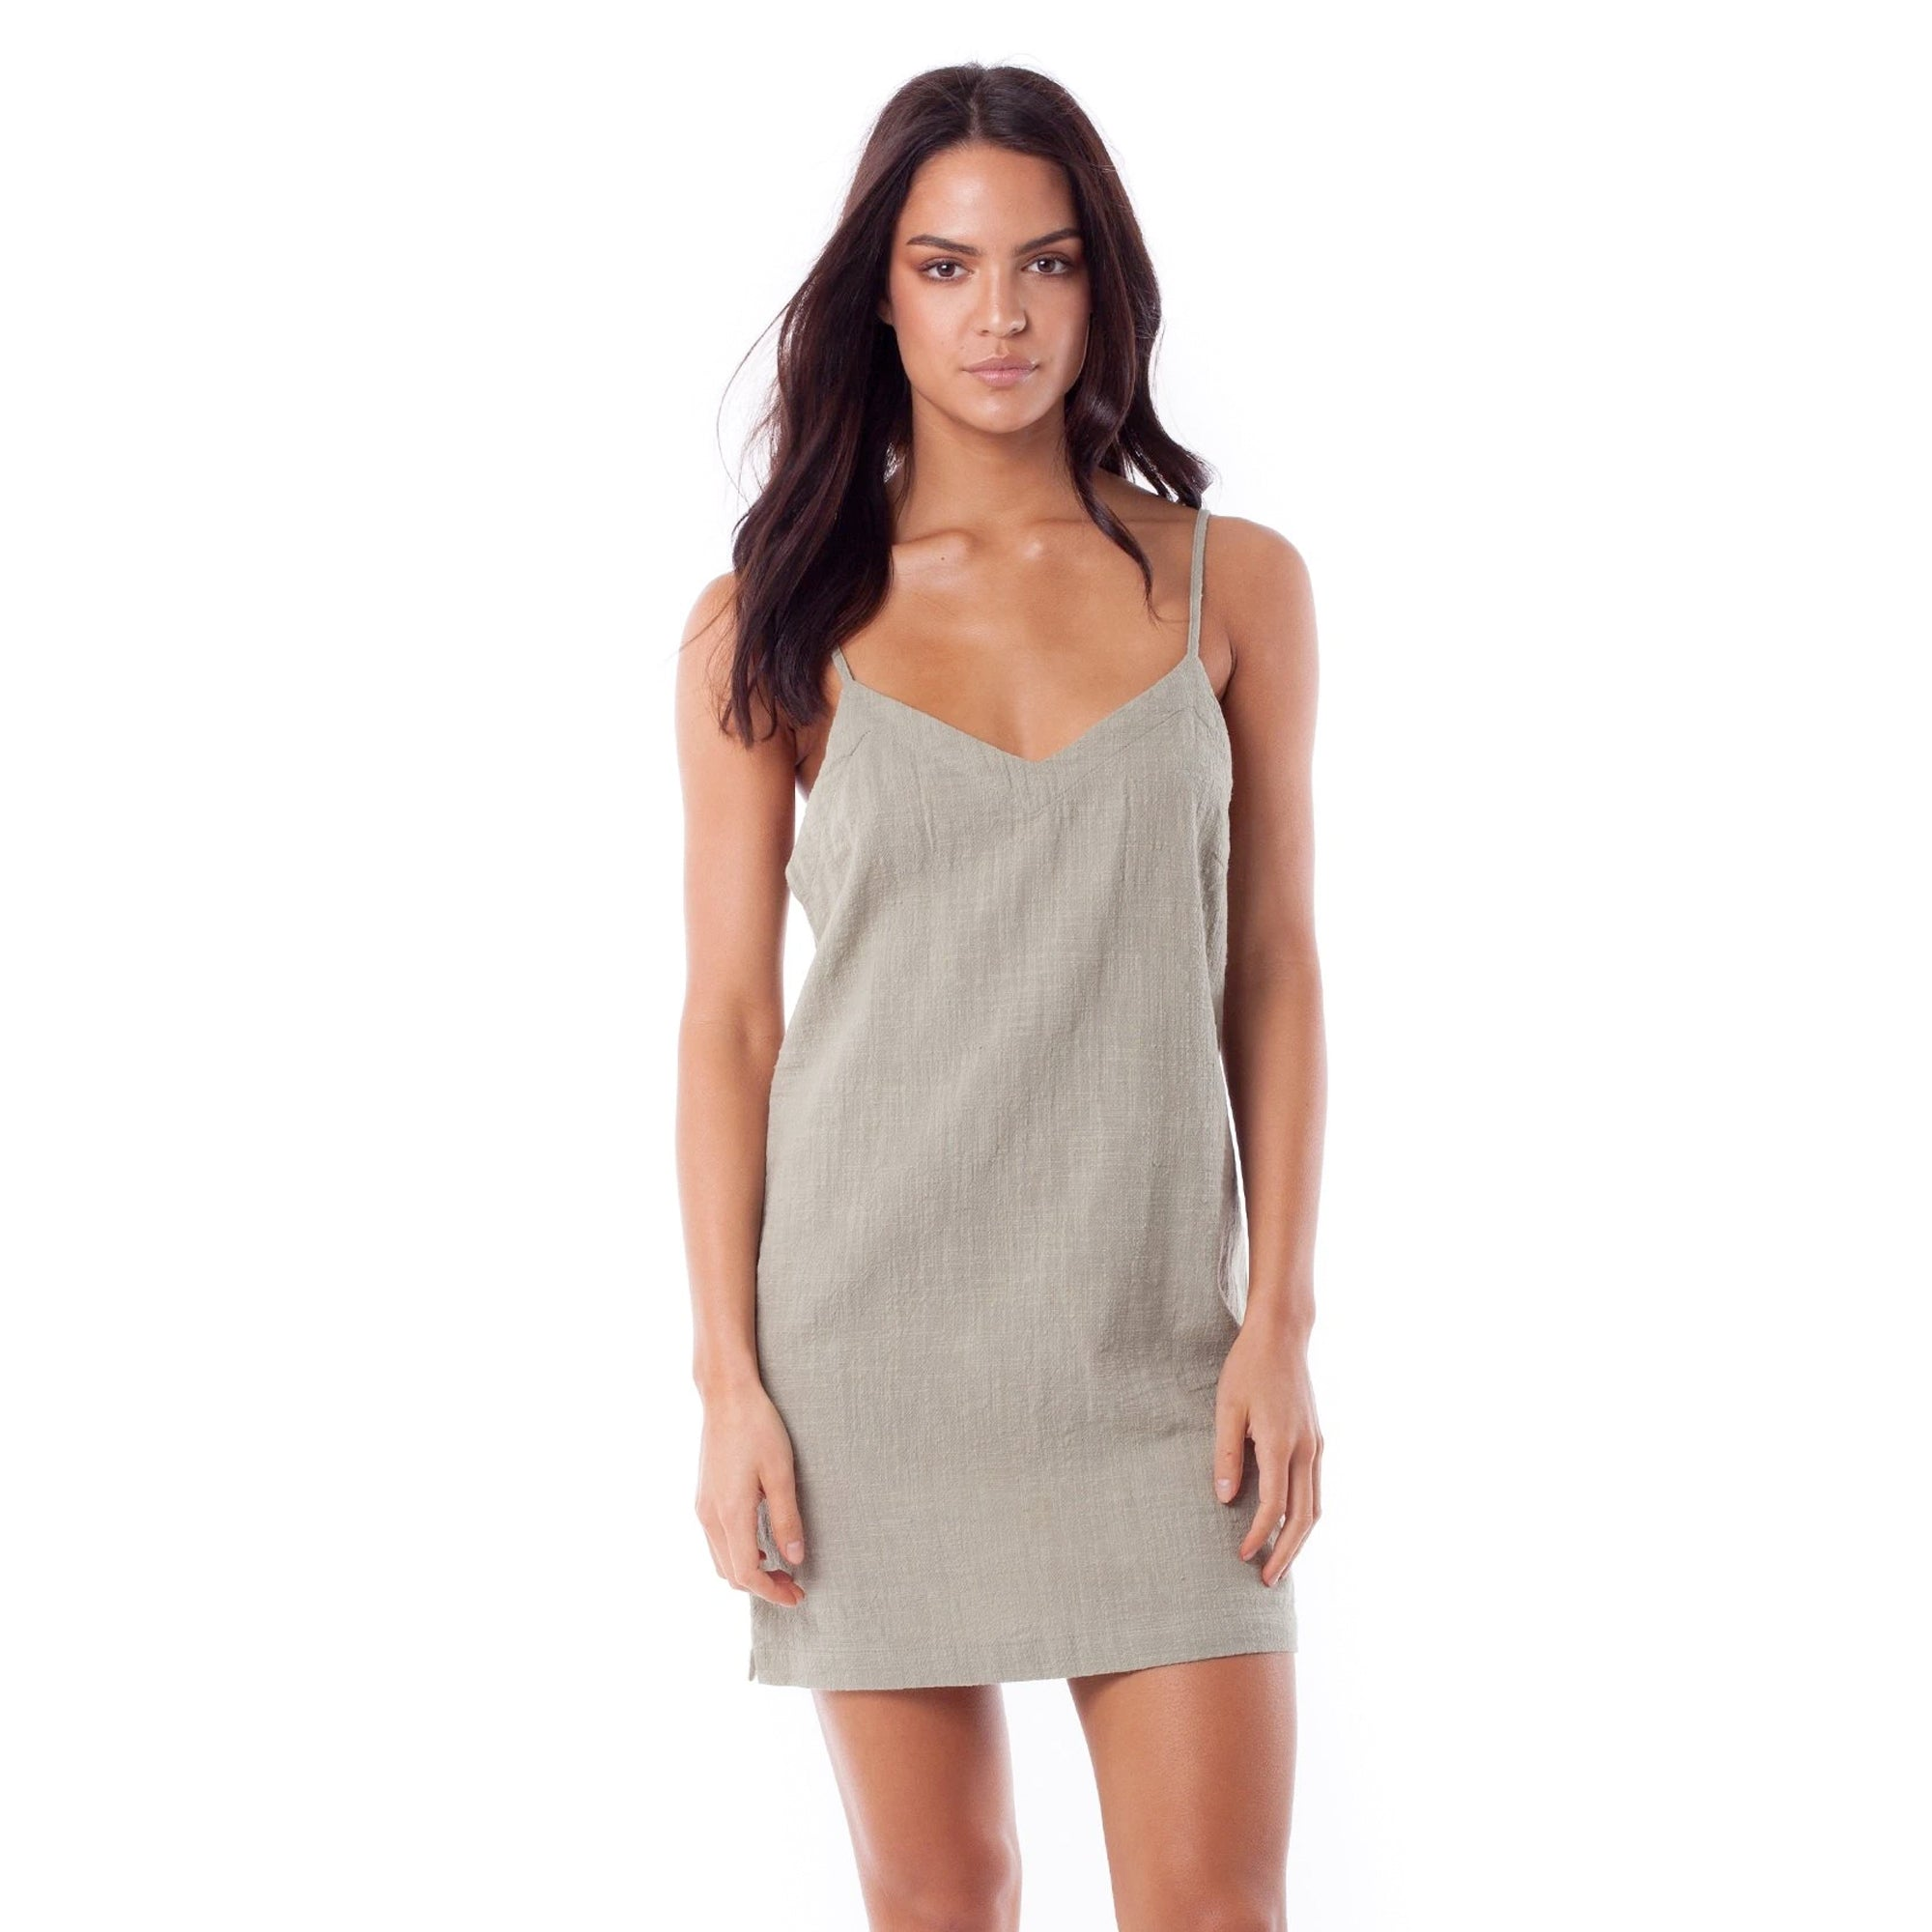 Rhythm Malta Women's Dress